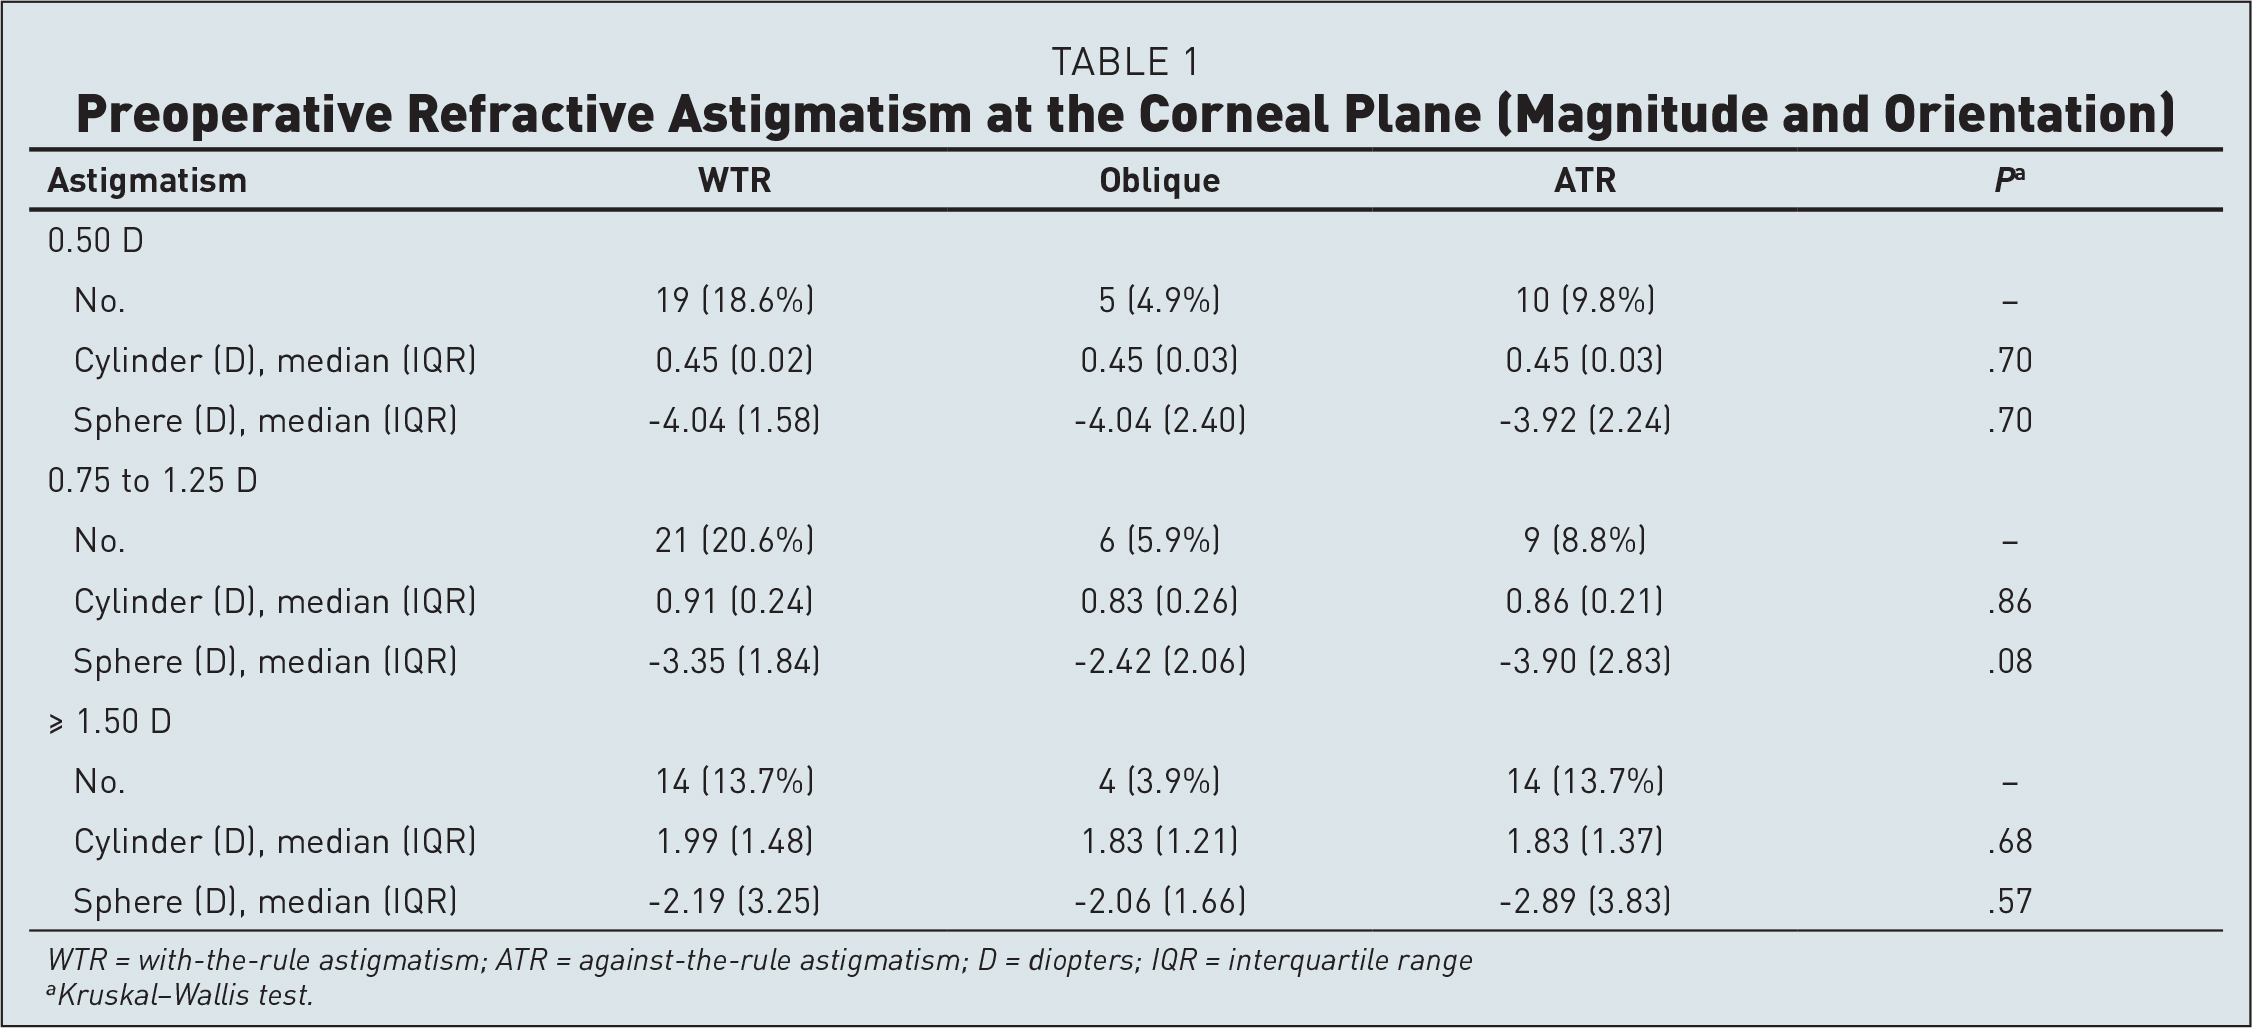 Preoperative Refractive Astigmatism at the Corneal Plane (Magnitude and Orientation)